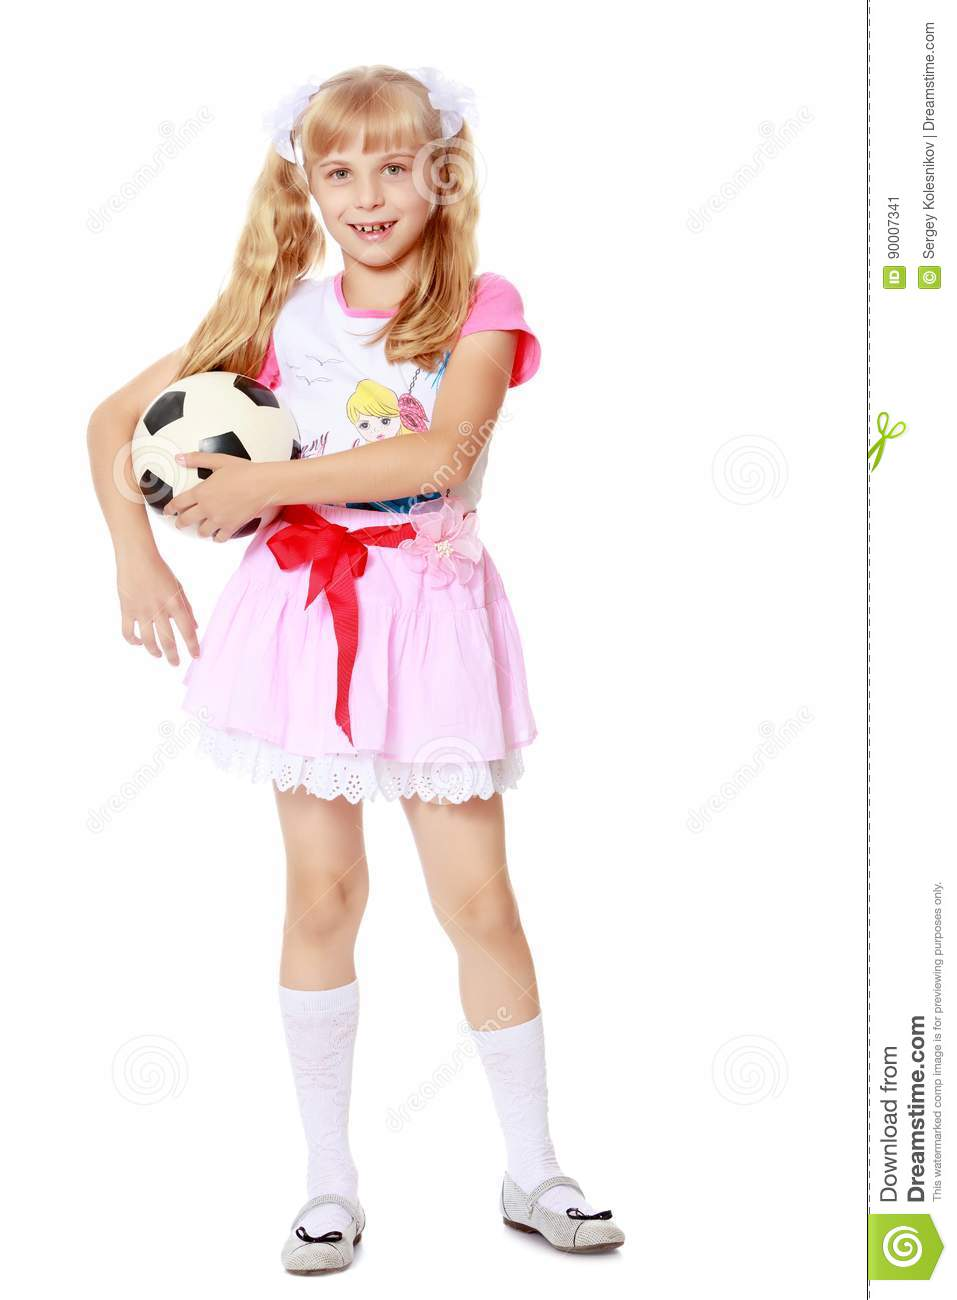 8932f9676 Girl Playing With Soccer Ball Stock Image - Image of caucasian